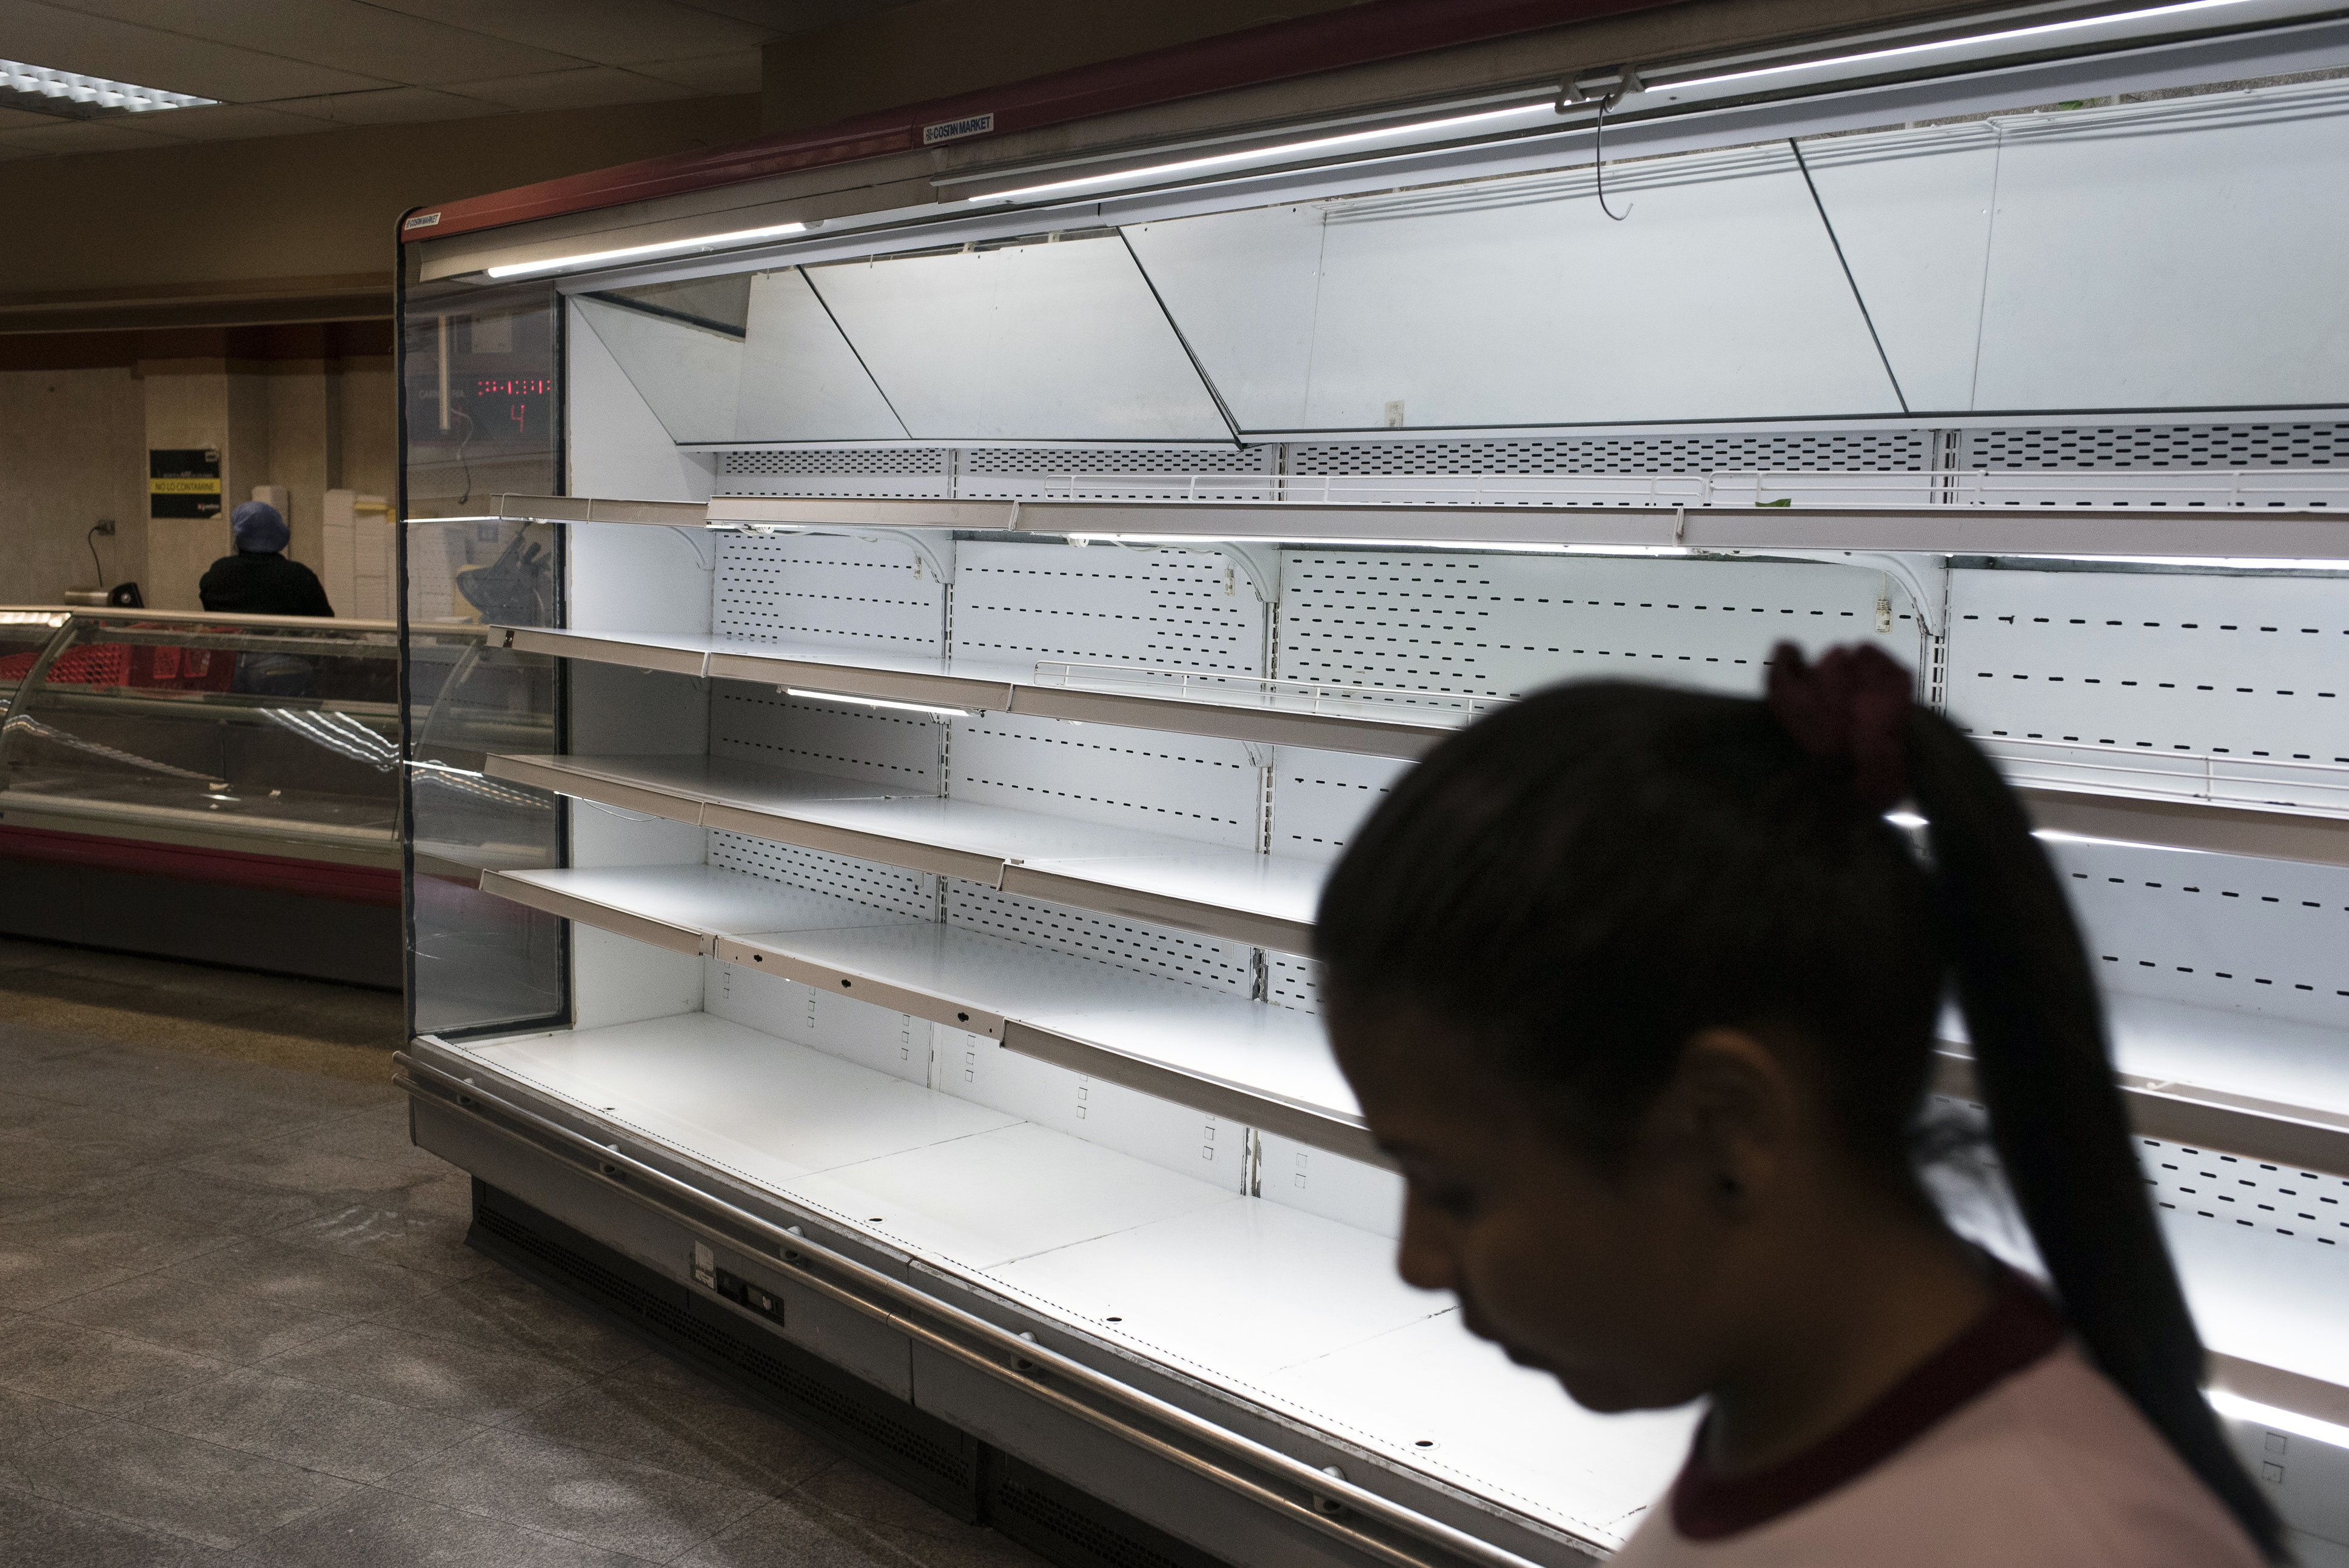 A customer passes empty shelves at a grocery store in Caracas, Venezuela, on Tuesday, Jan. 9, 2018. Hordes of desperate shoppers emptied supermarkets and bodegas last week after President Nicolas Maduro ordered hundreds of grocery stores slash their prices in the latest attempt to put a lid on hyperinflation. Photographer: Carlos Becerra/Bloomberg via Getty Images